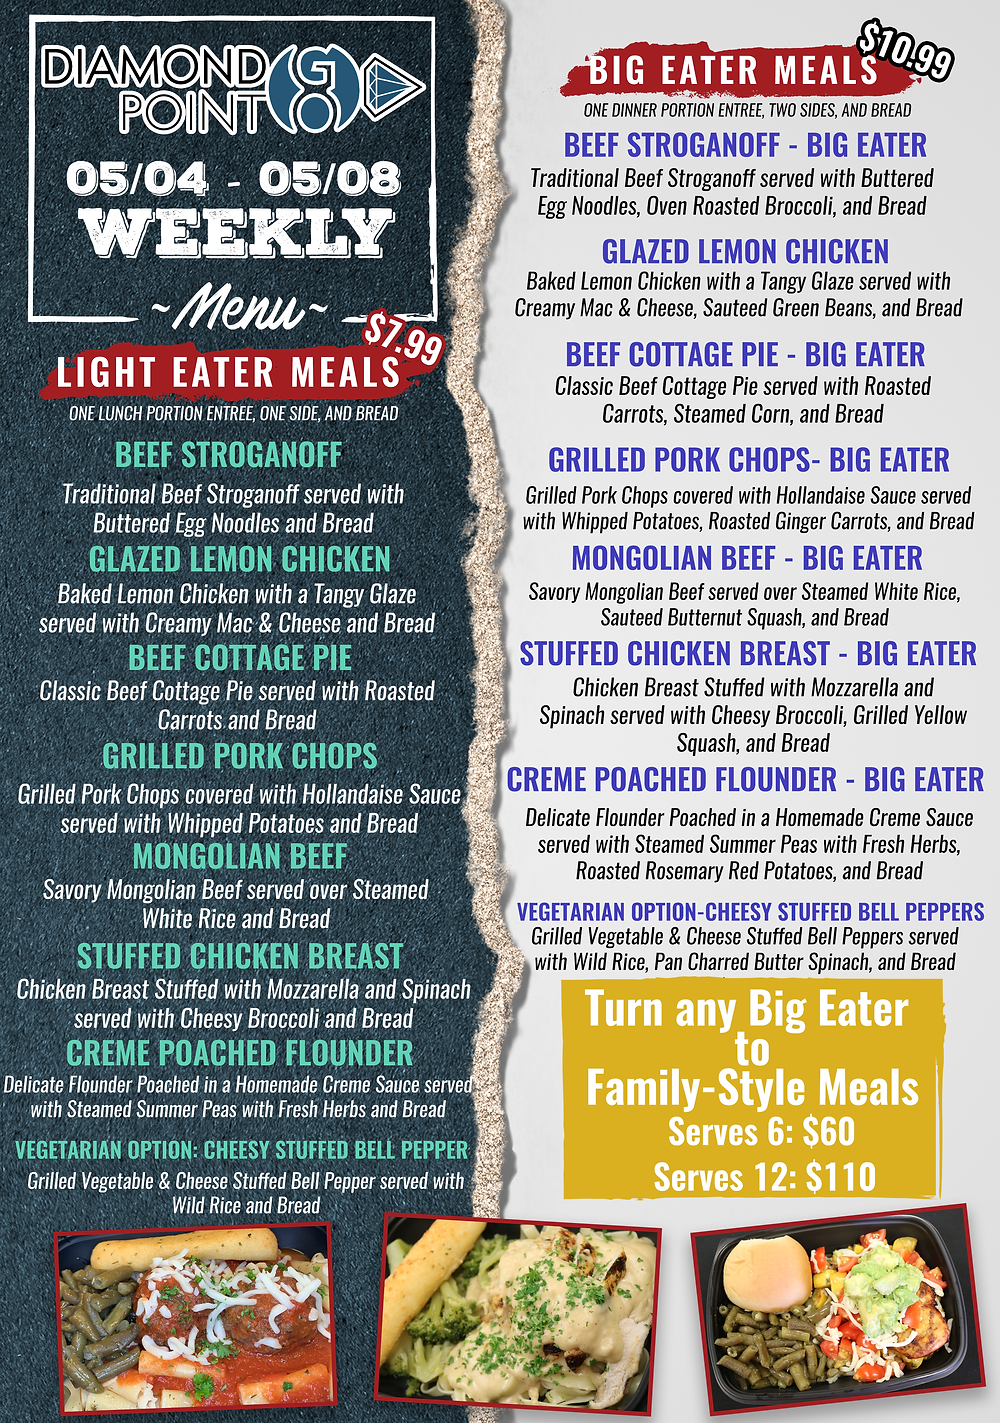 Diamond Point GO menu for May 4 through May 8